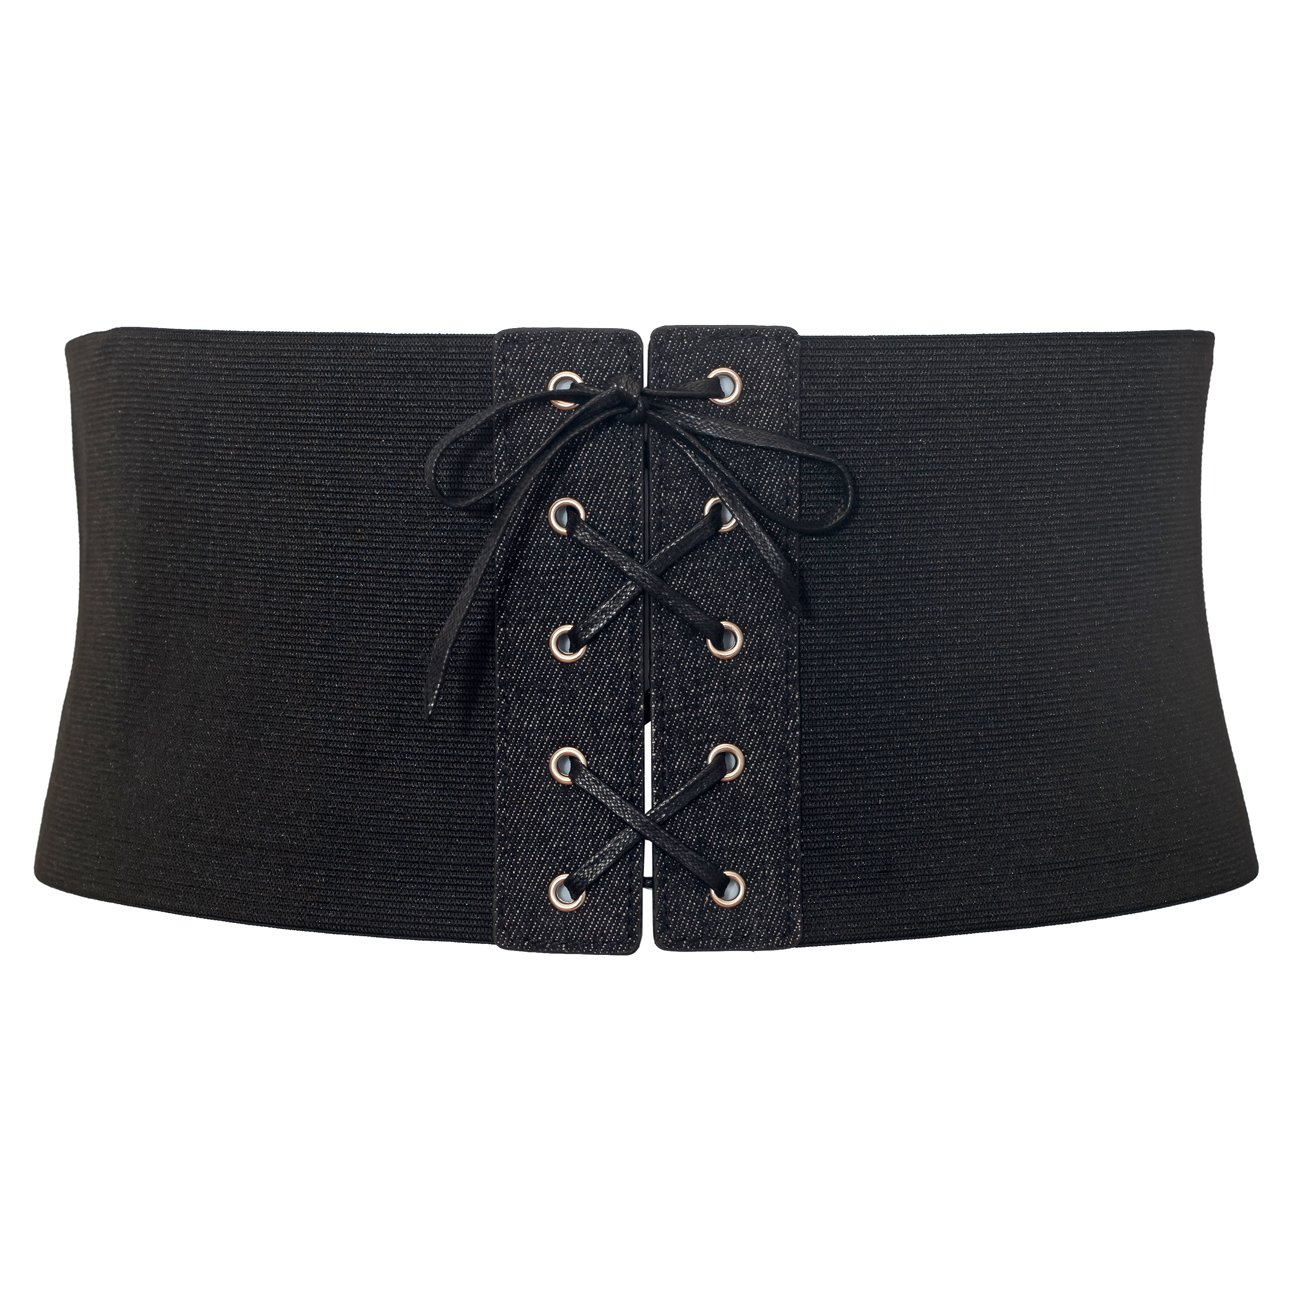 eVogues Women's Corset Style Wide Elastic Belt Black Denim - One Size Junior by eVogues Apparel